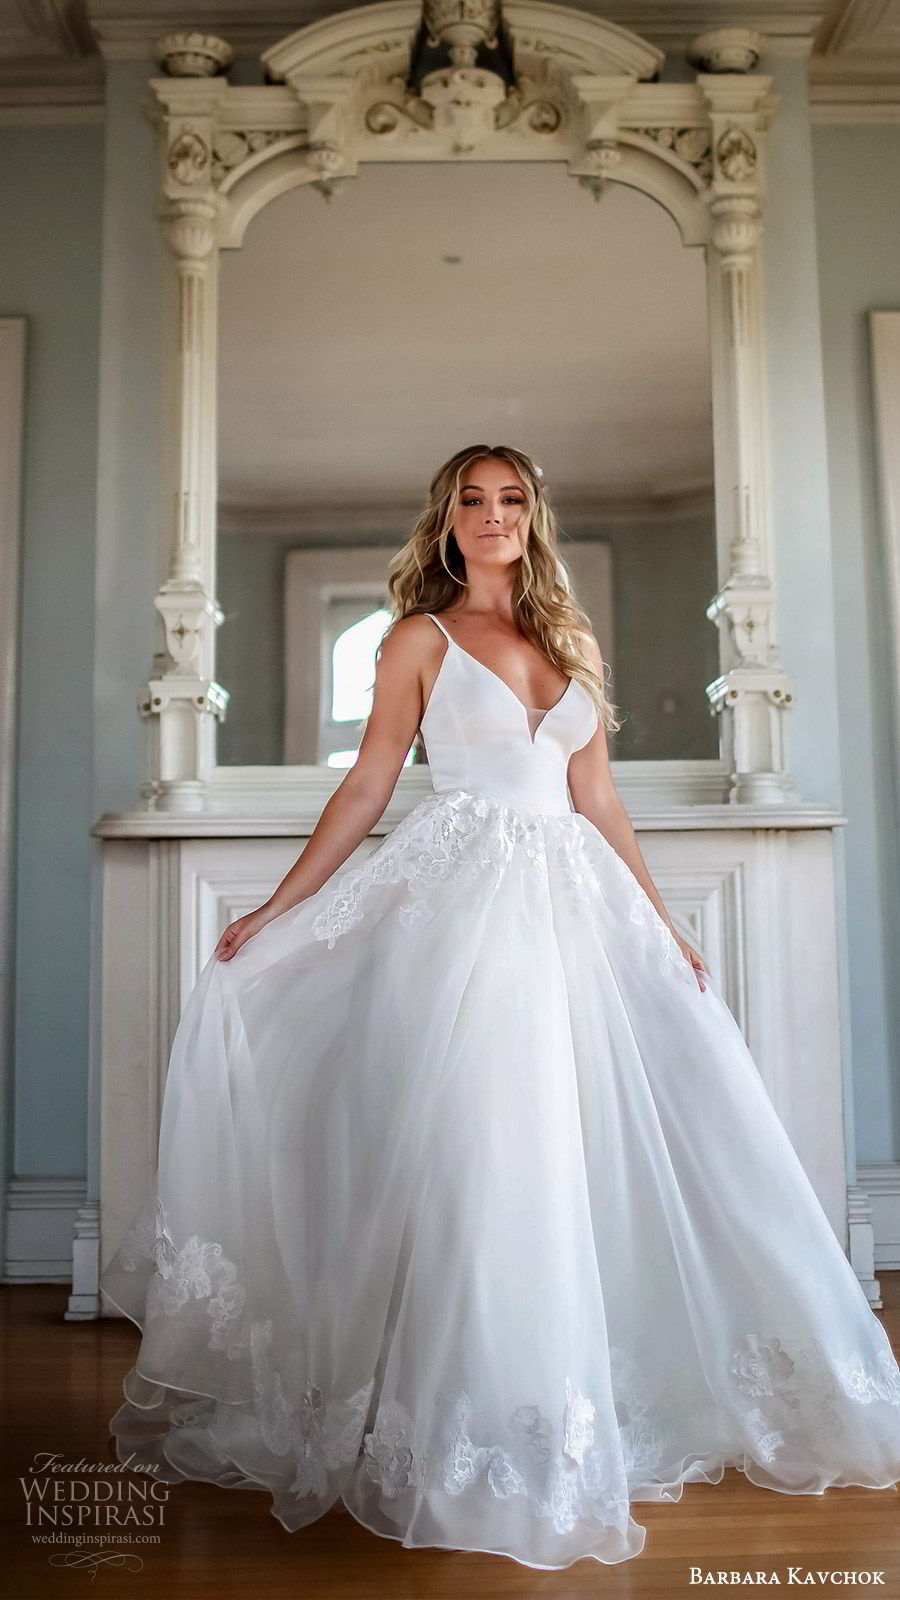 barbara kavchok fall 2019 bridal sleeveless thin straps sweetheart neckline sheath wedding dress (3) mv embellished skirt ball gown overskirt chapel train romantic elegant